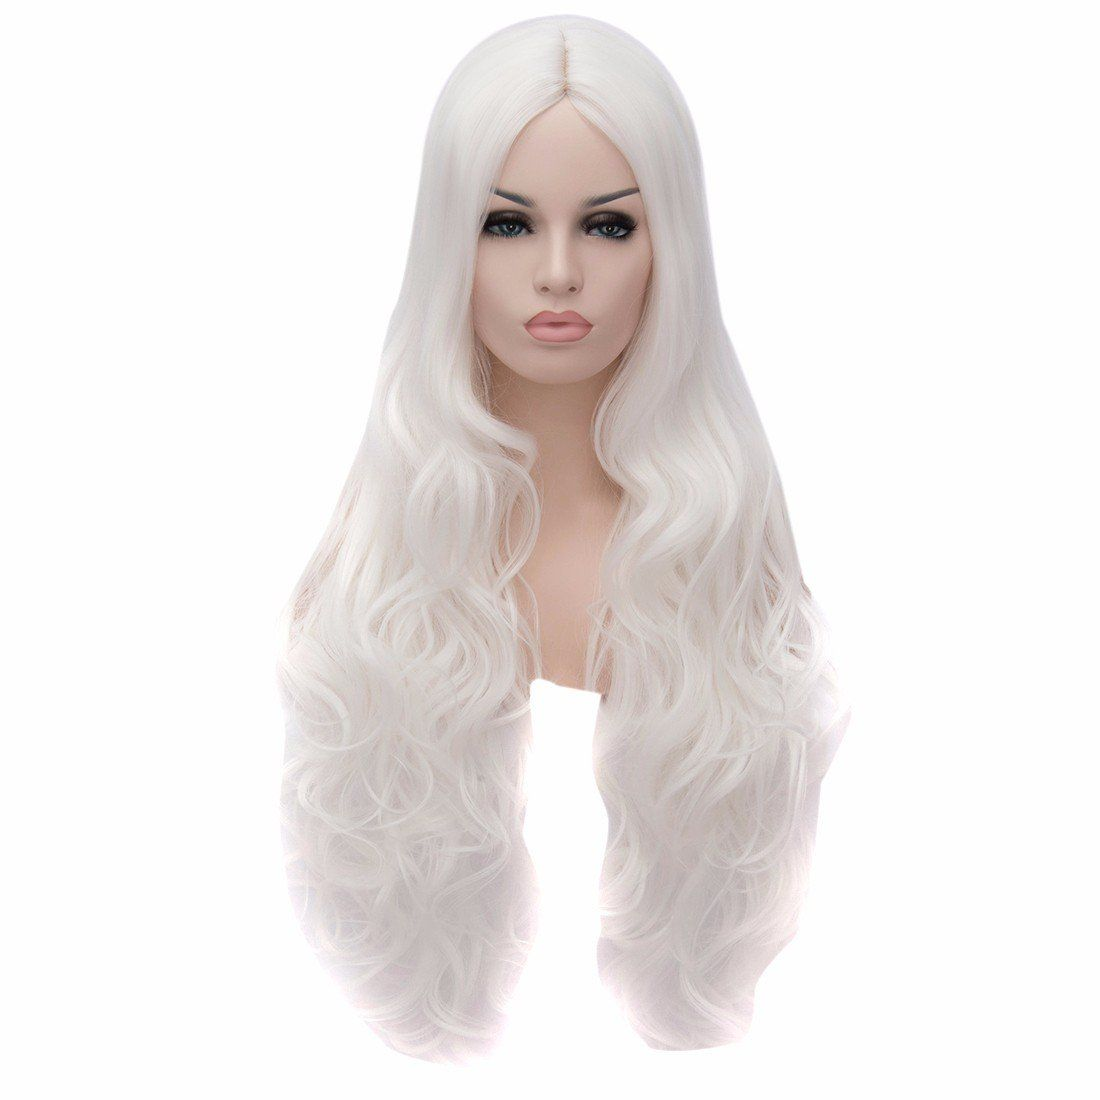 Terrifying Halloween Costumes   New Women Ladies Long Wavy Curly Pure White  Hair Full Wigs Wig Cosplay Party  halloweencostumes c7c8bdc6e6